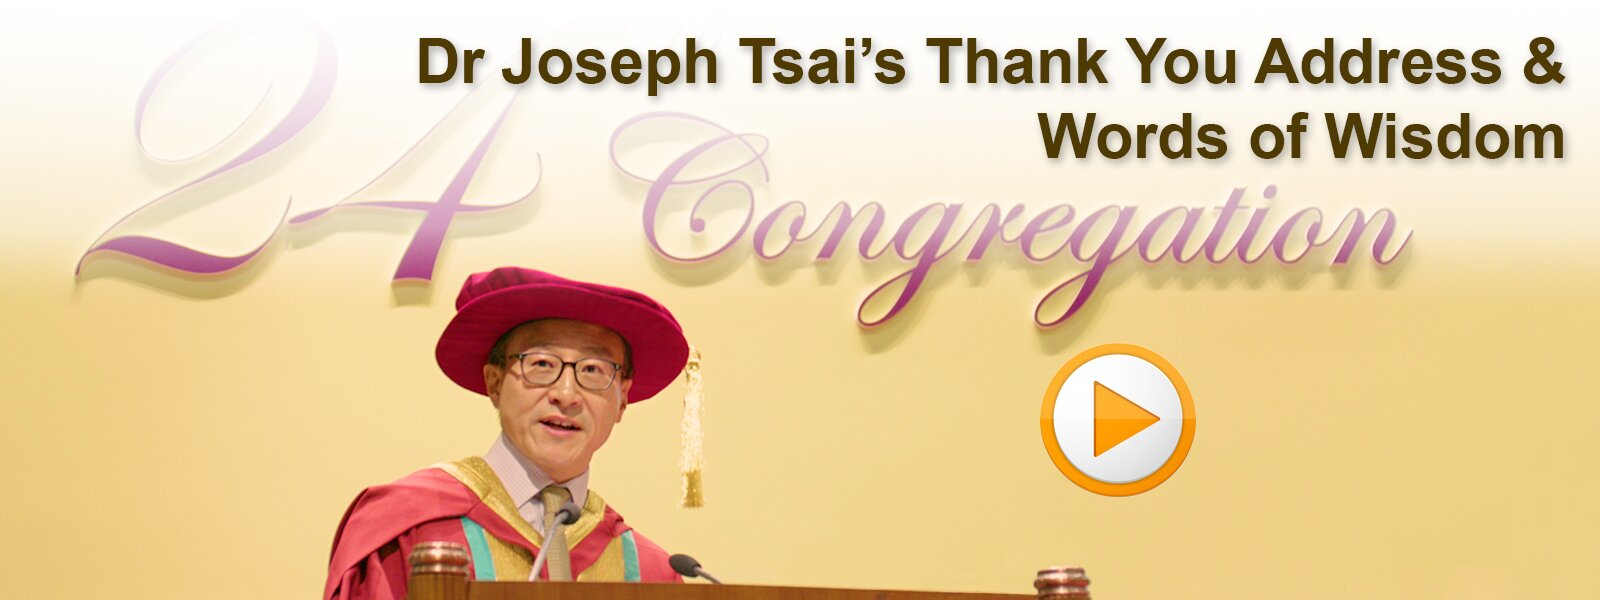 Dr Joseph Tsai's Thank You Address & Words of Wisdom